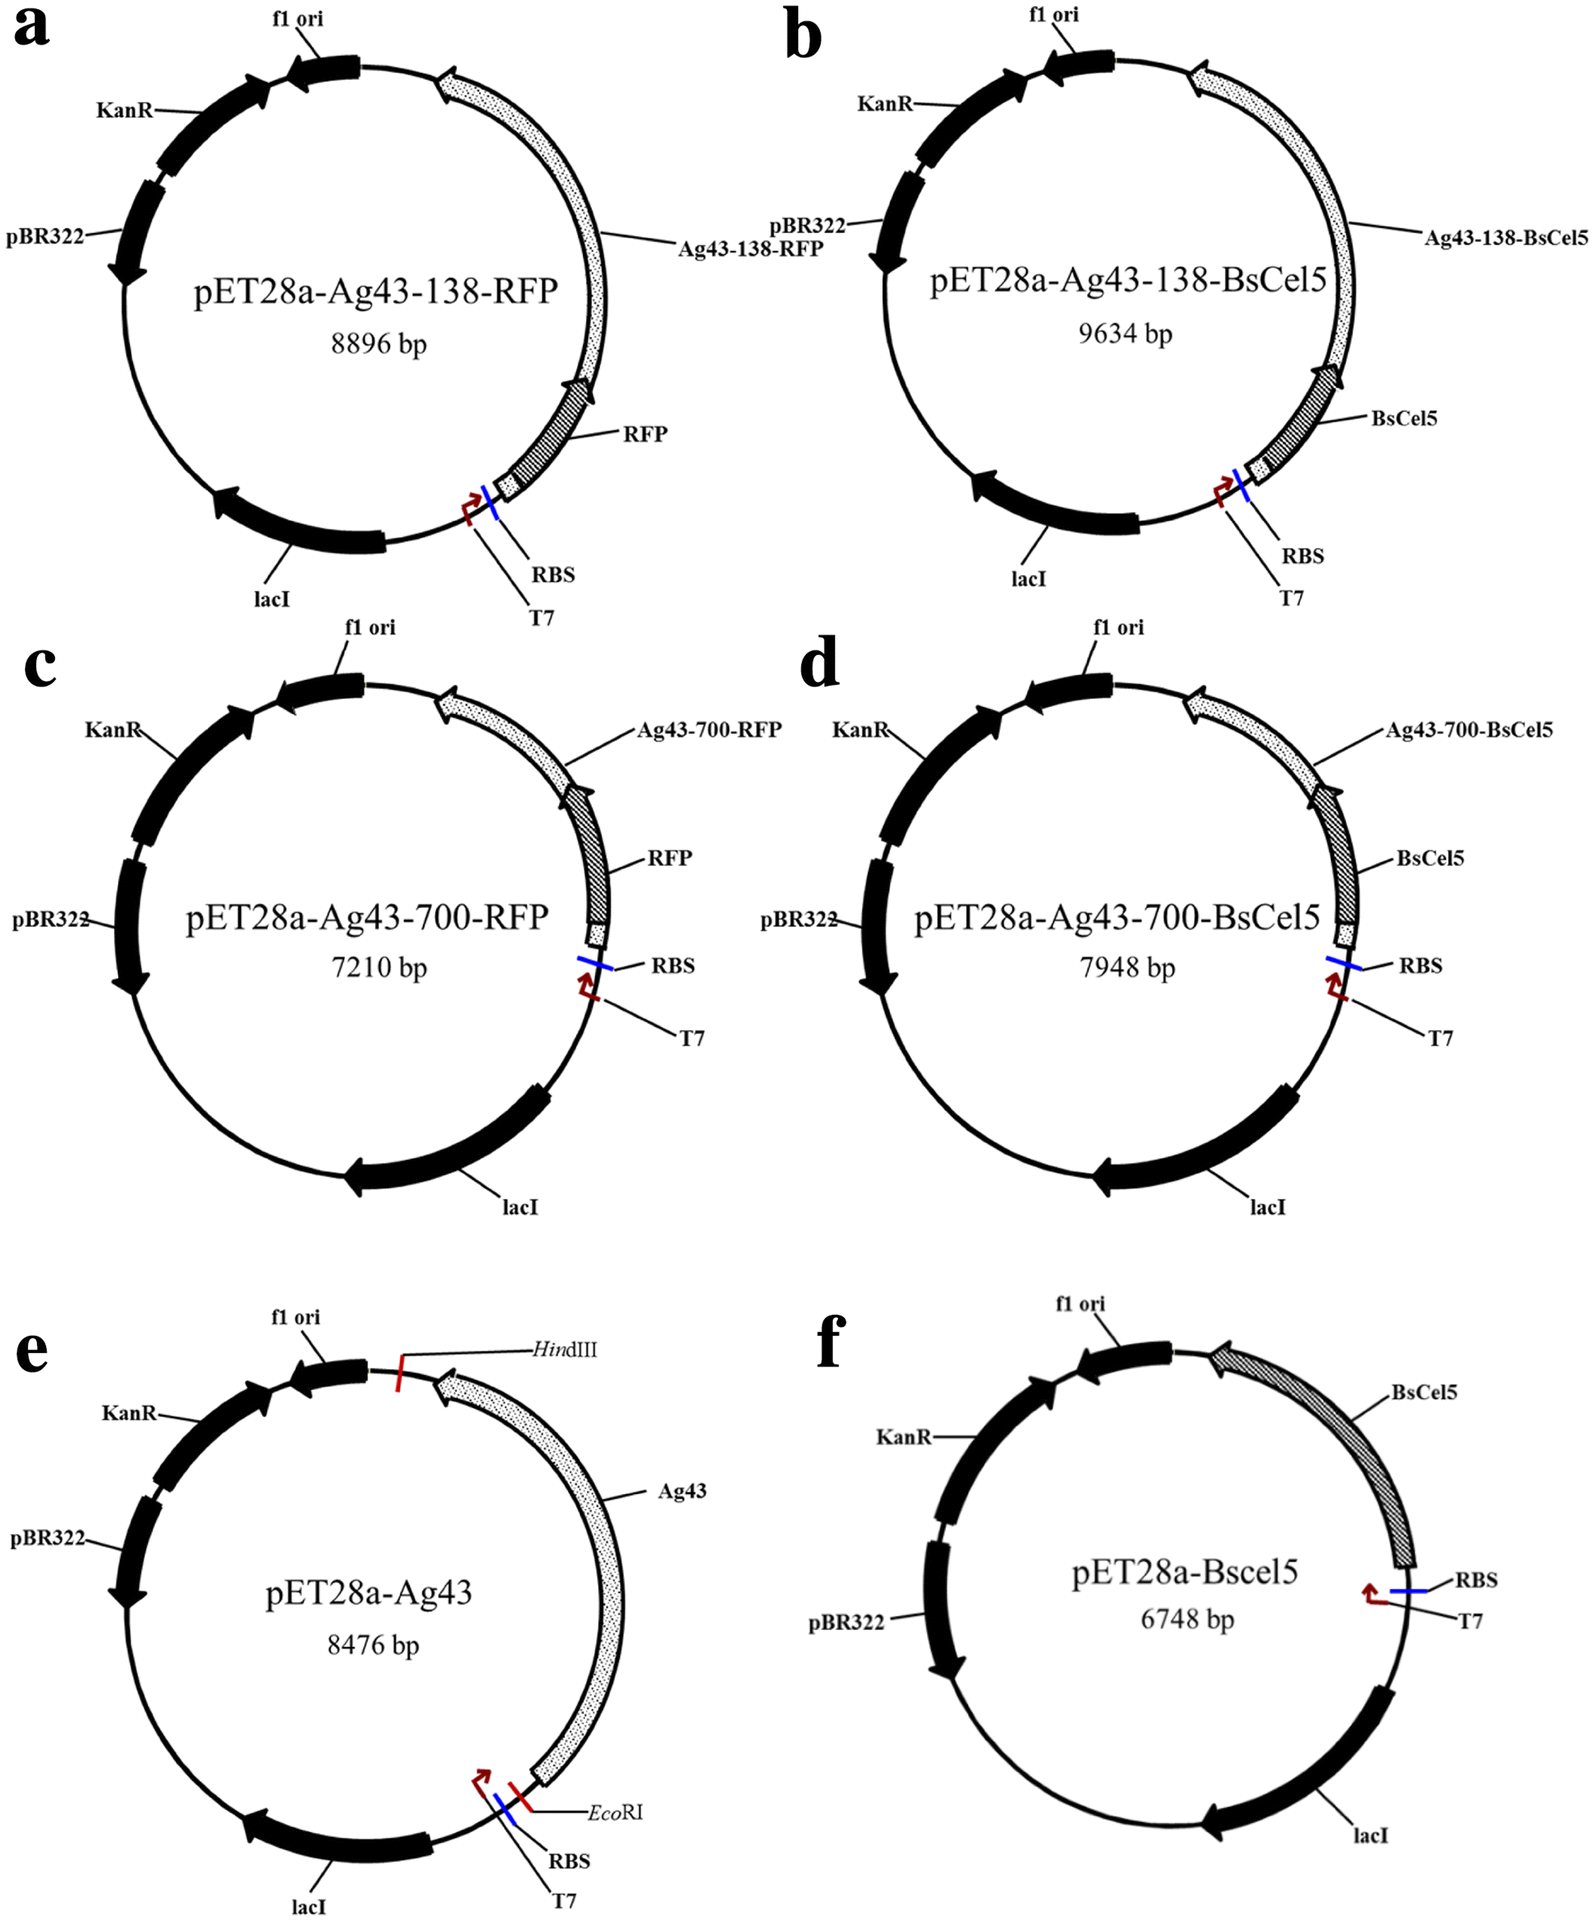 Antigen-43-mediated surface display revealed in Escherichia coli by